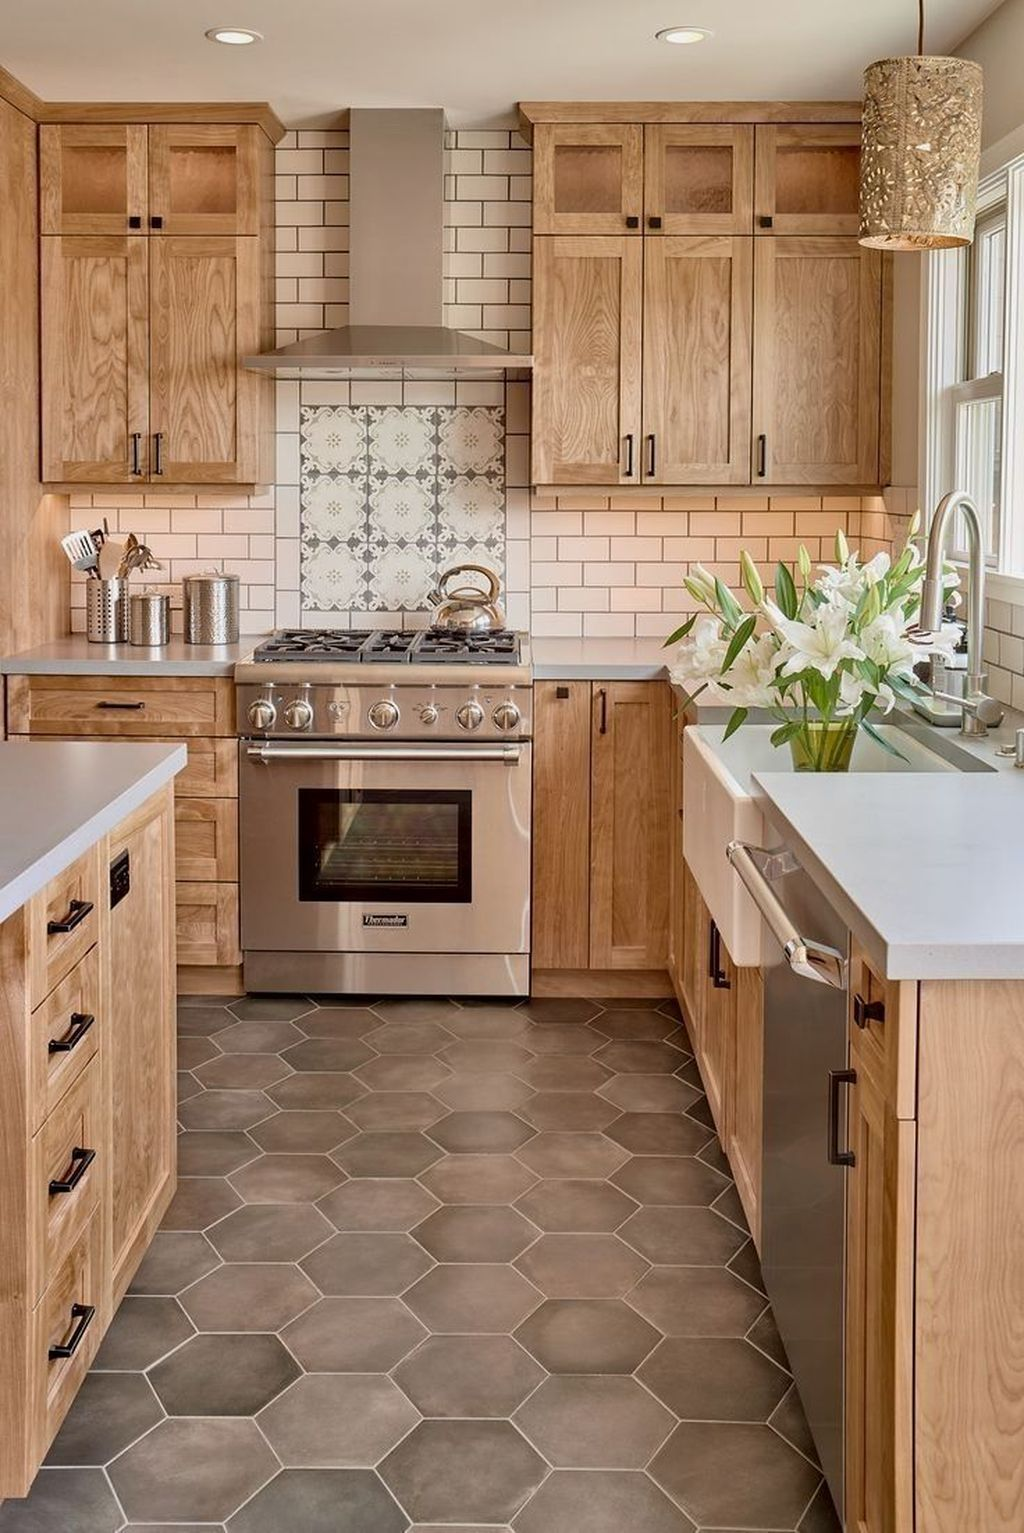 46 The Best Modern Farmhouse Kitchen Design Ideas To Blend